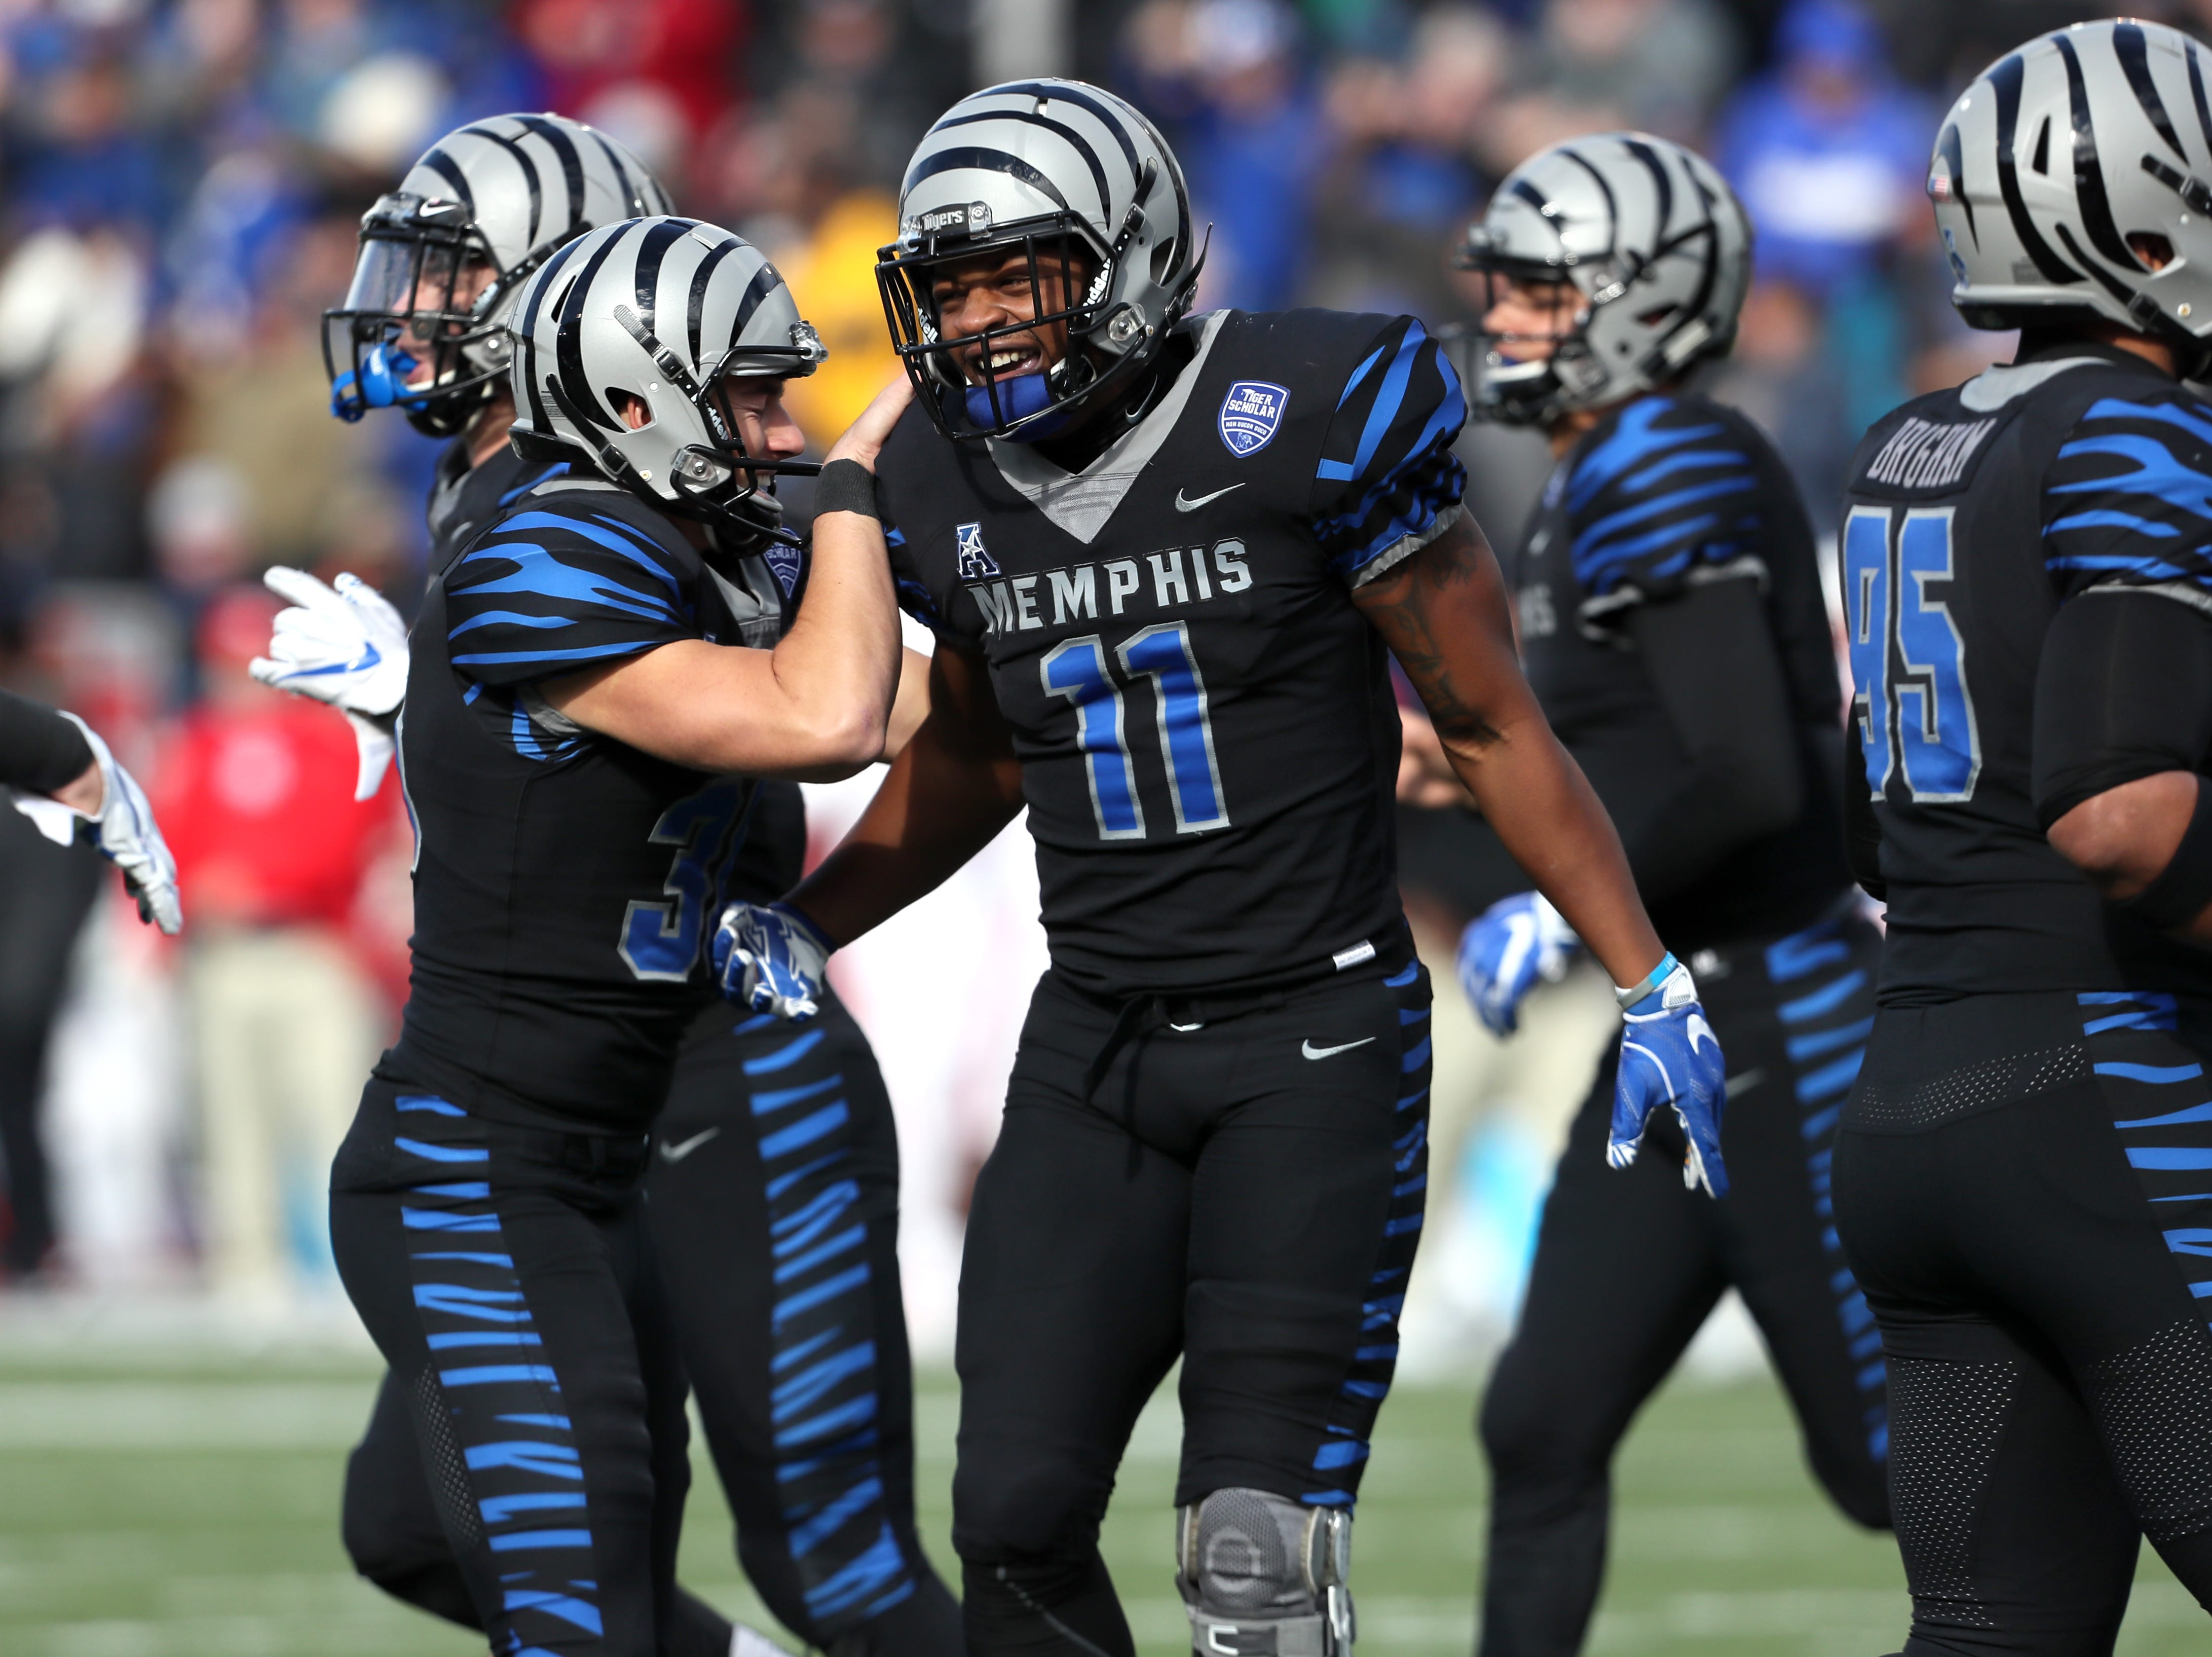 Memphis' Sam Craft celebrates his touchdown witrh teammates against the Houston Cougars as the Tigers win the AAC West title 52-31 at the Liberty Bowl on Friday, Nov. 23, 2018.